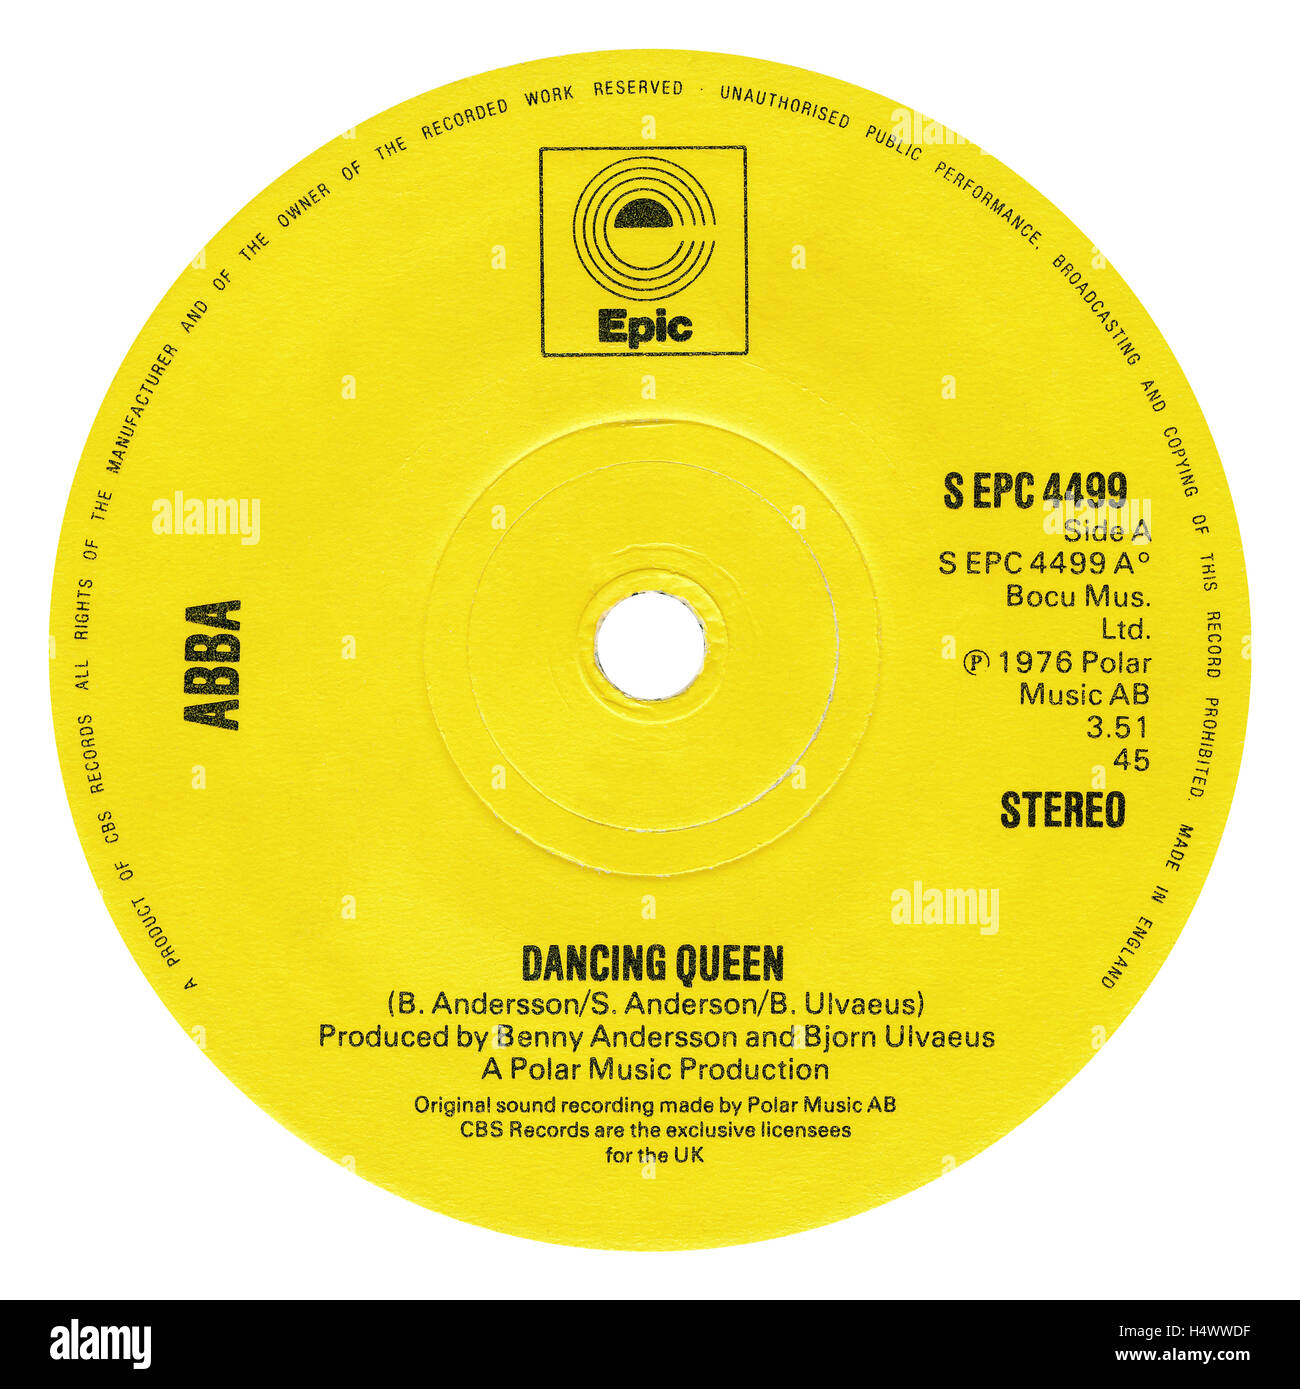 45 RPM 7' UK record label of Dancing Queen by ABBA on the Epic label from 1976 - Stock Image